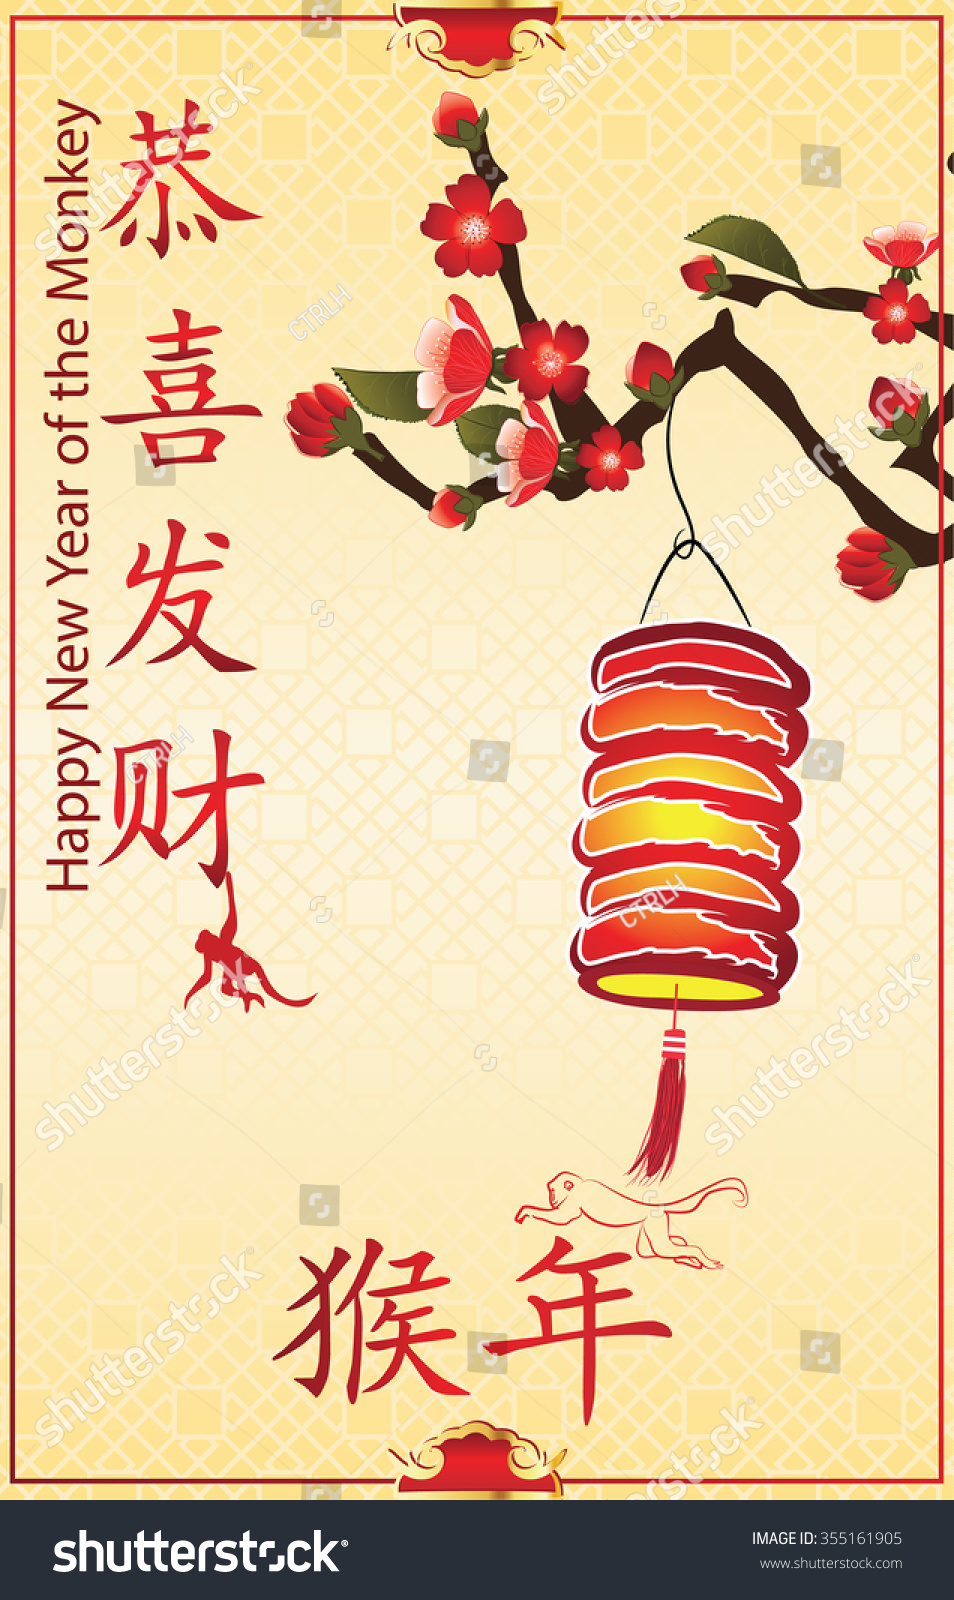 Business Chinese New Year Greeting Card Stock Vector ...